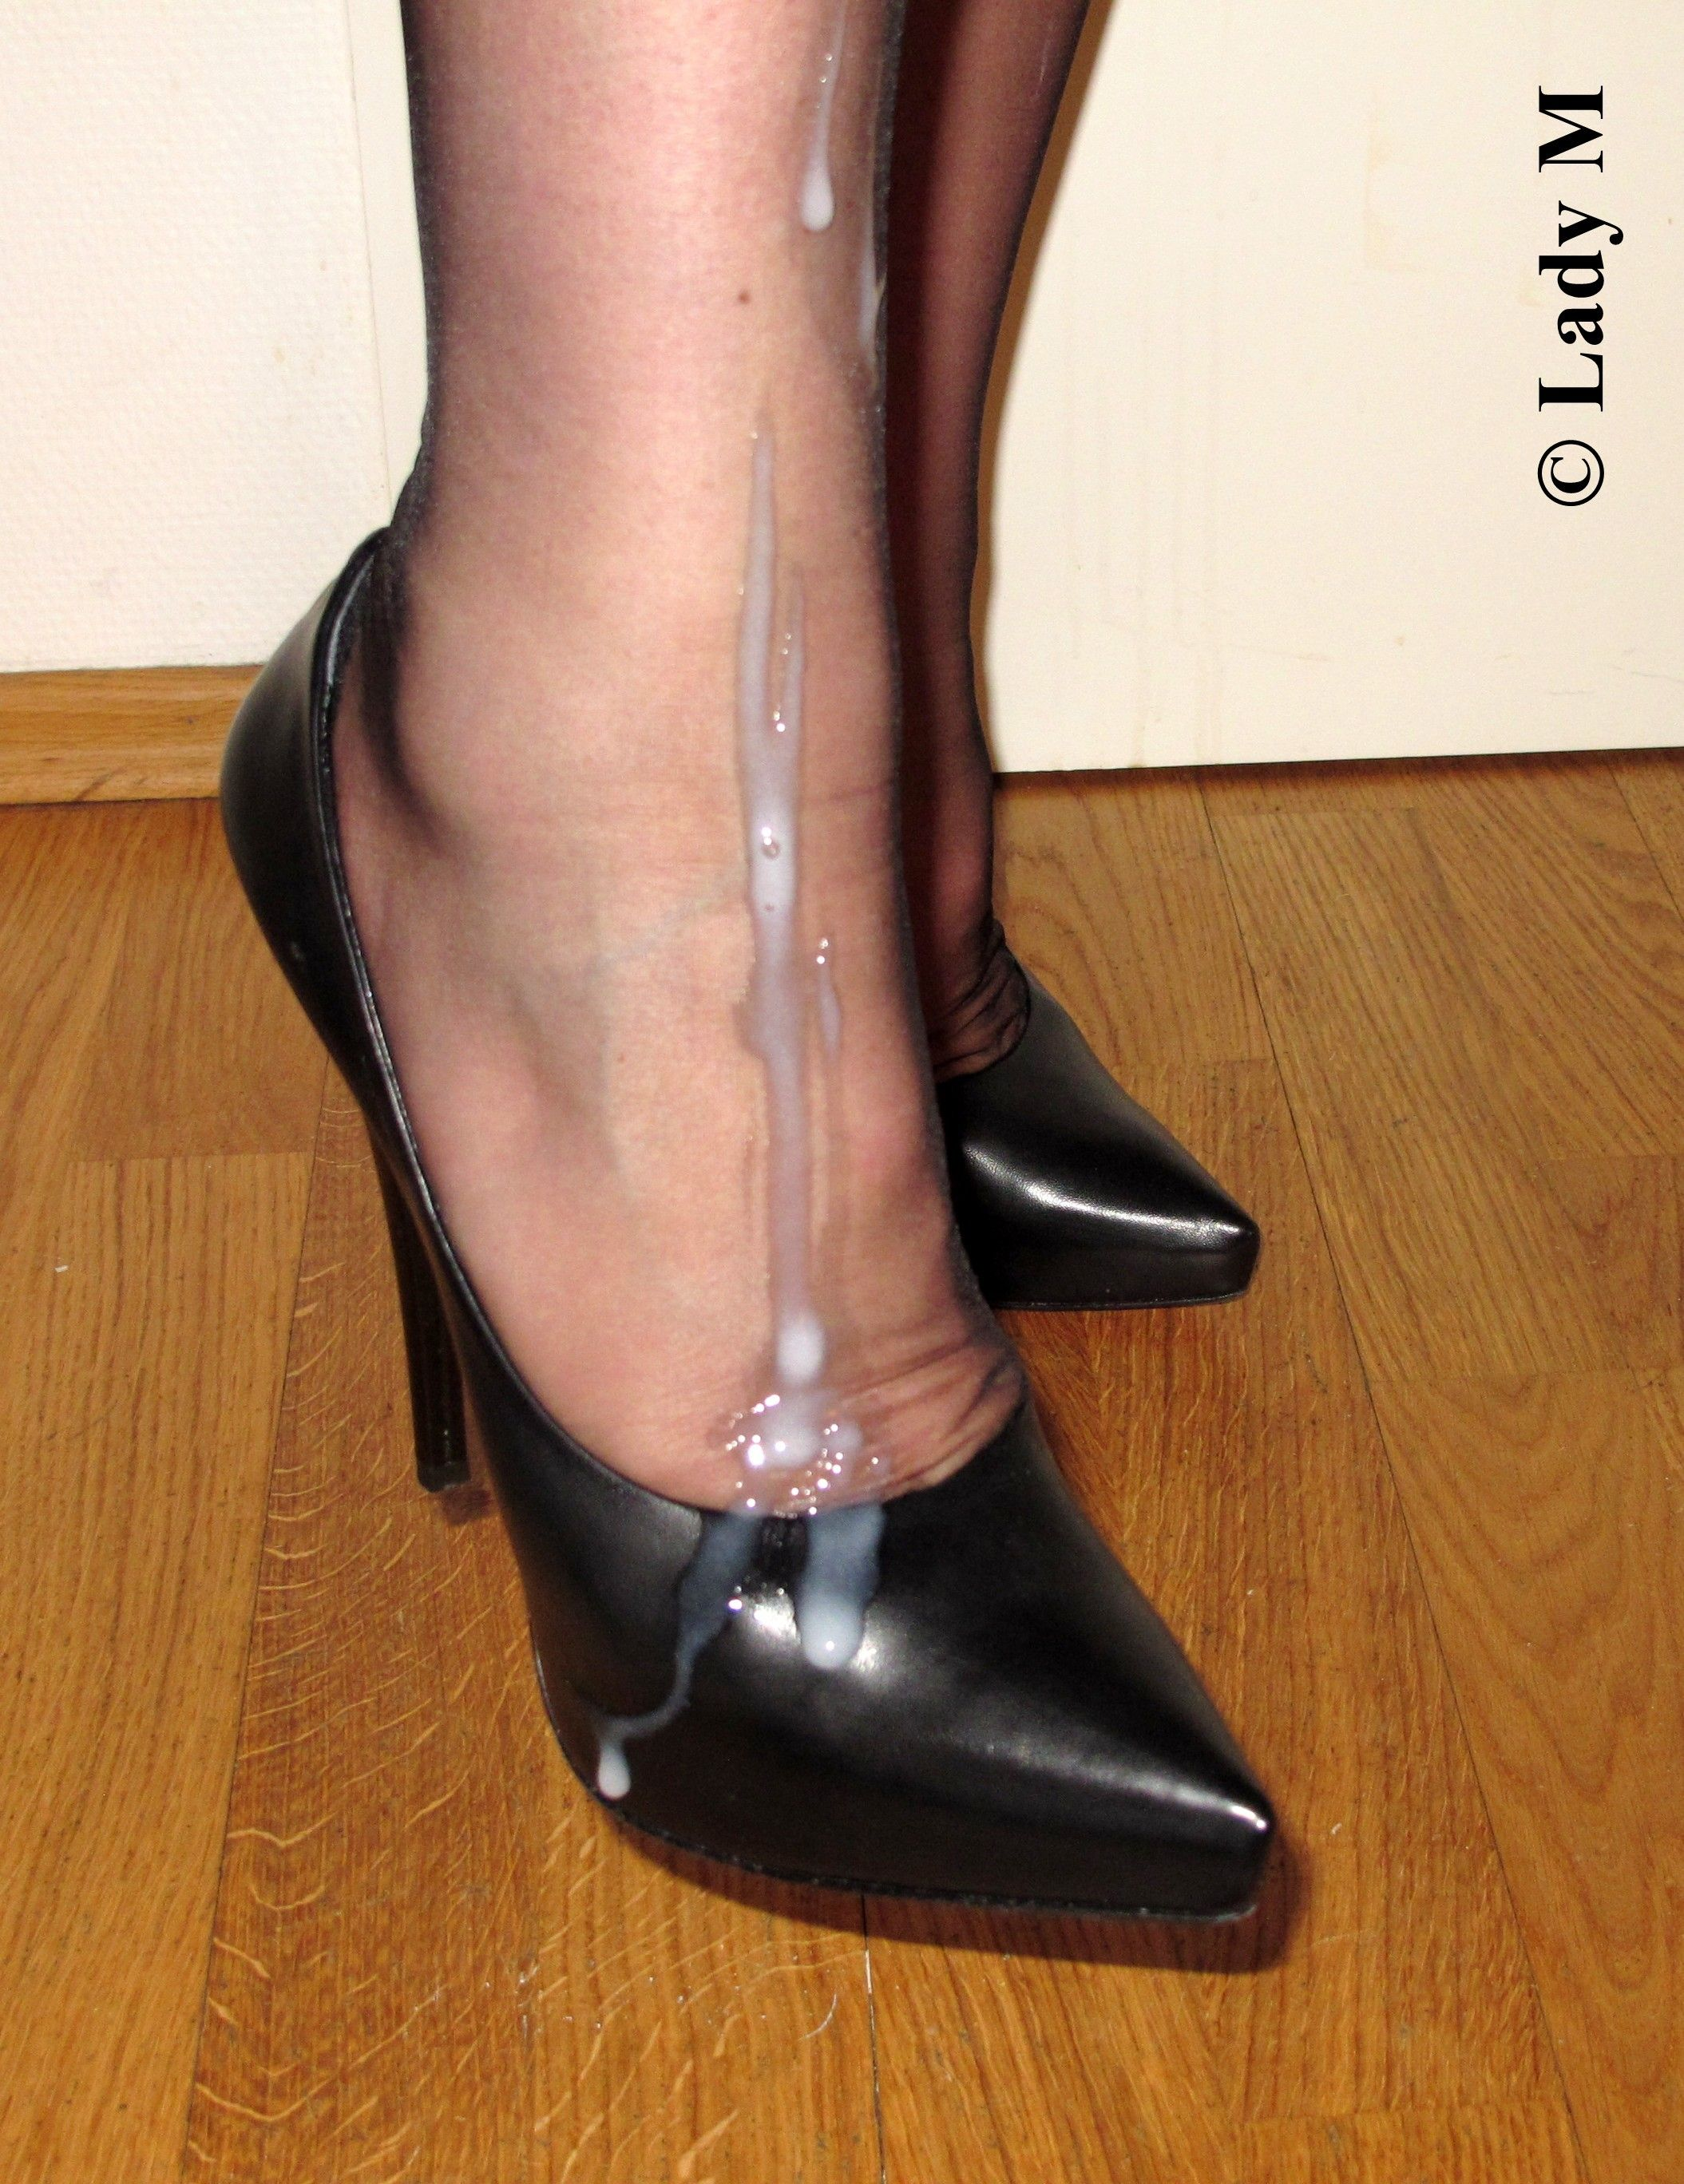 image High heel job cum on shoe